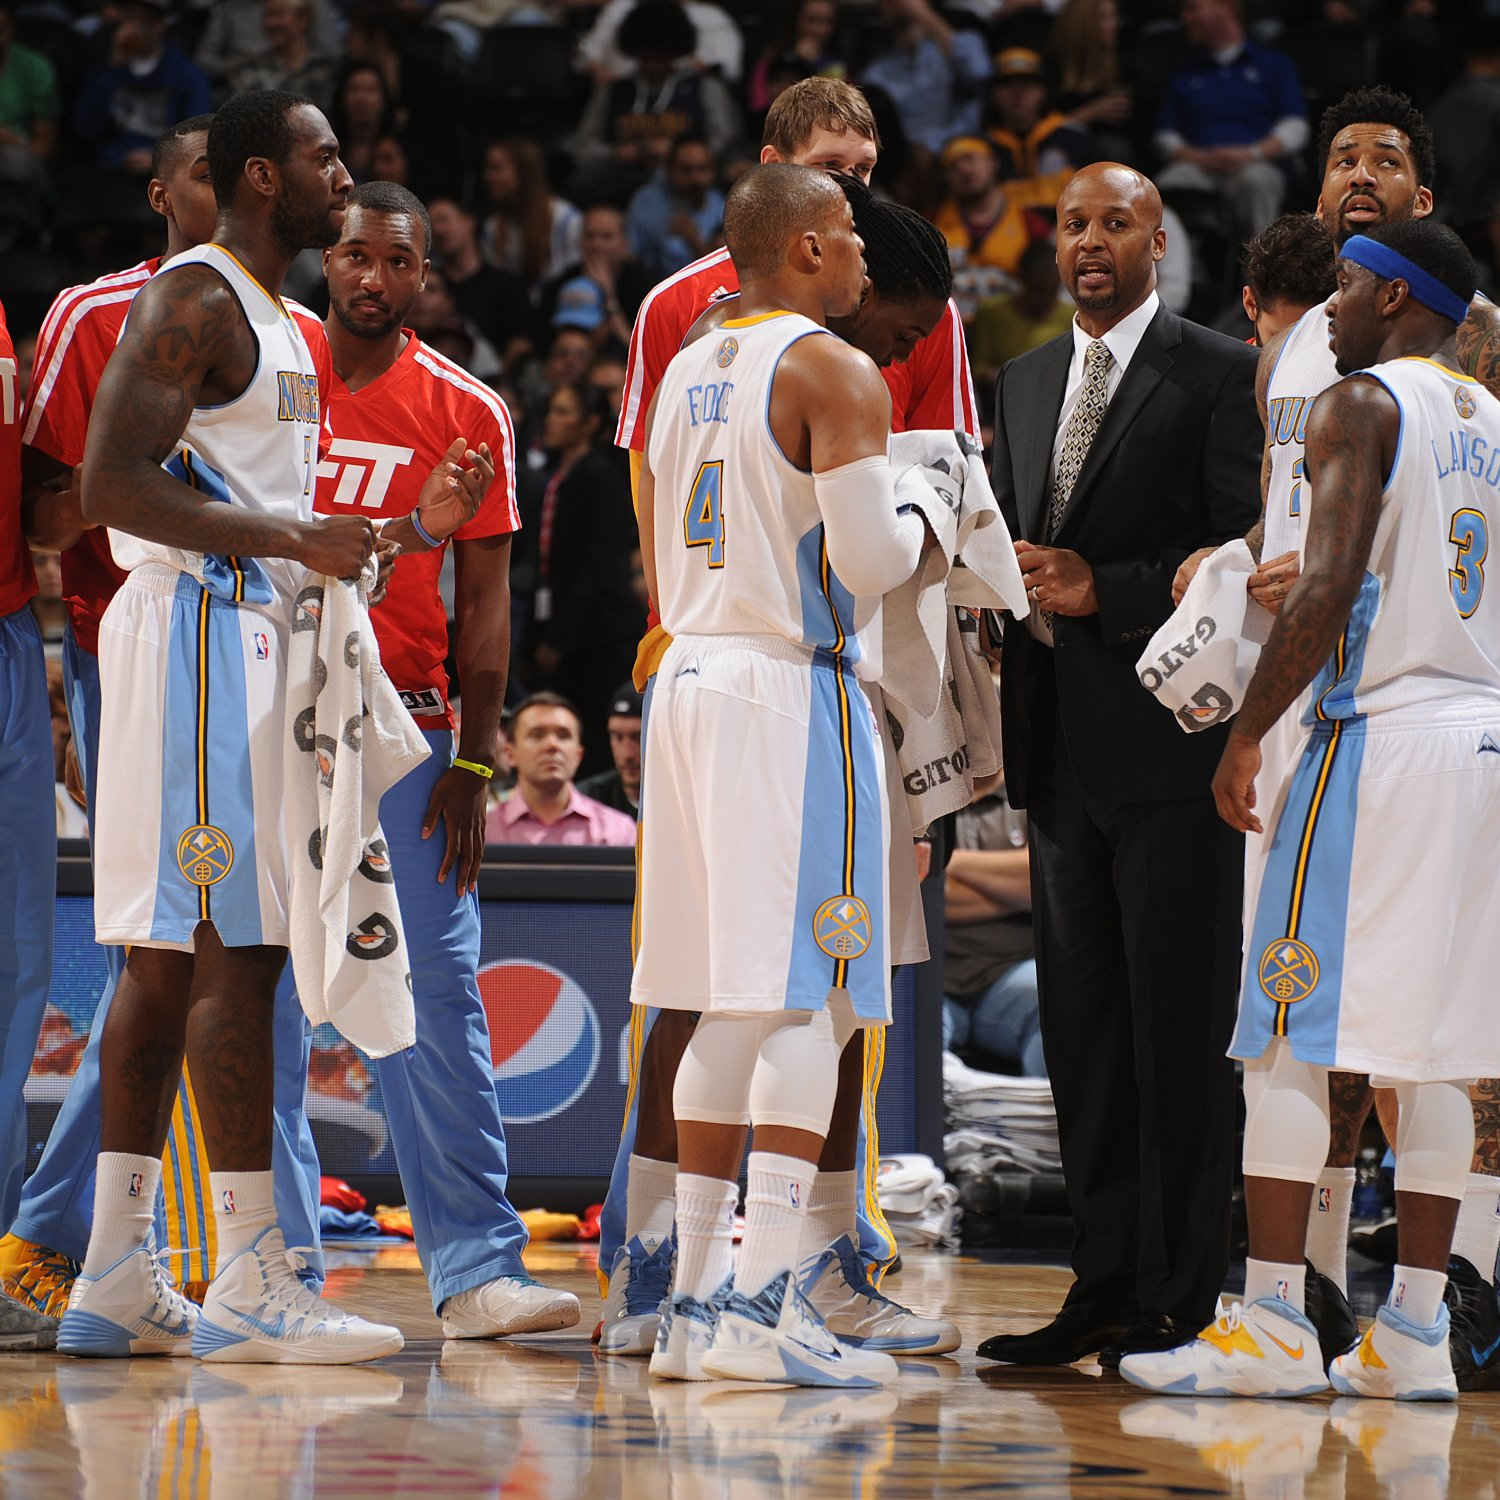 Denver Nuggets Famous Players: Final First-Half Player Power Rankings For Denver Nuggets